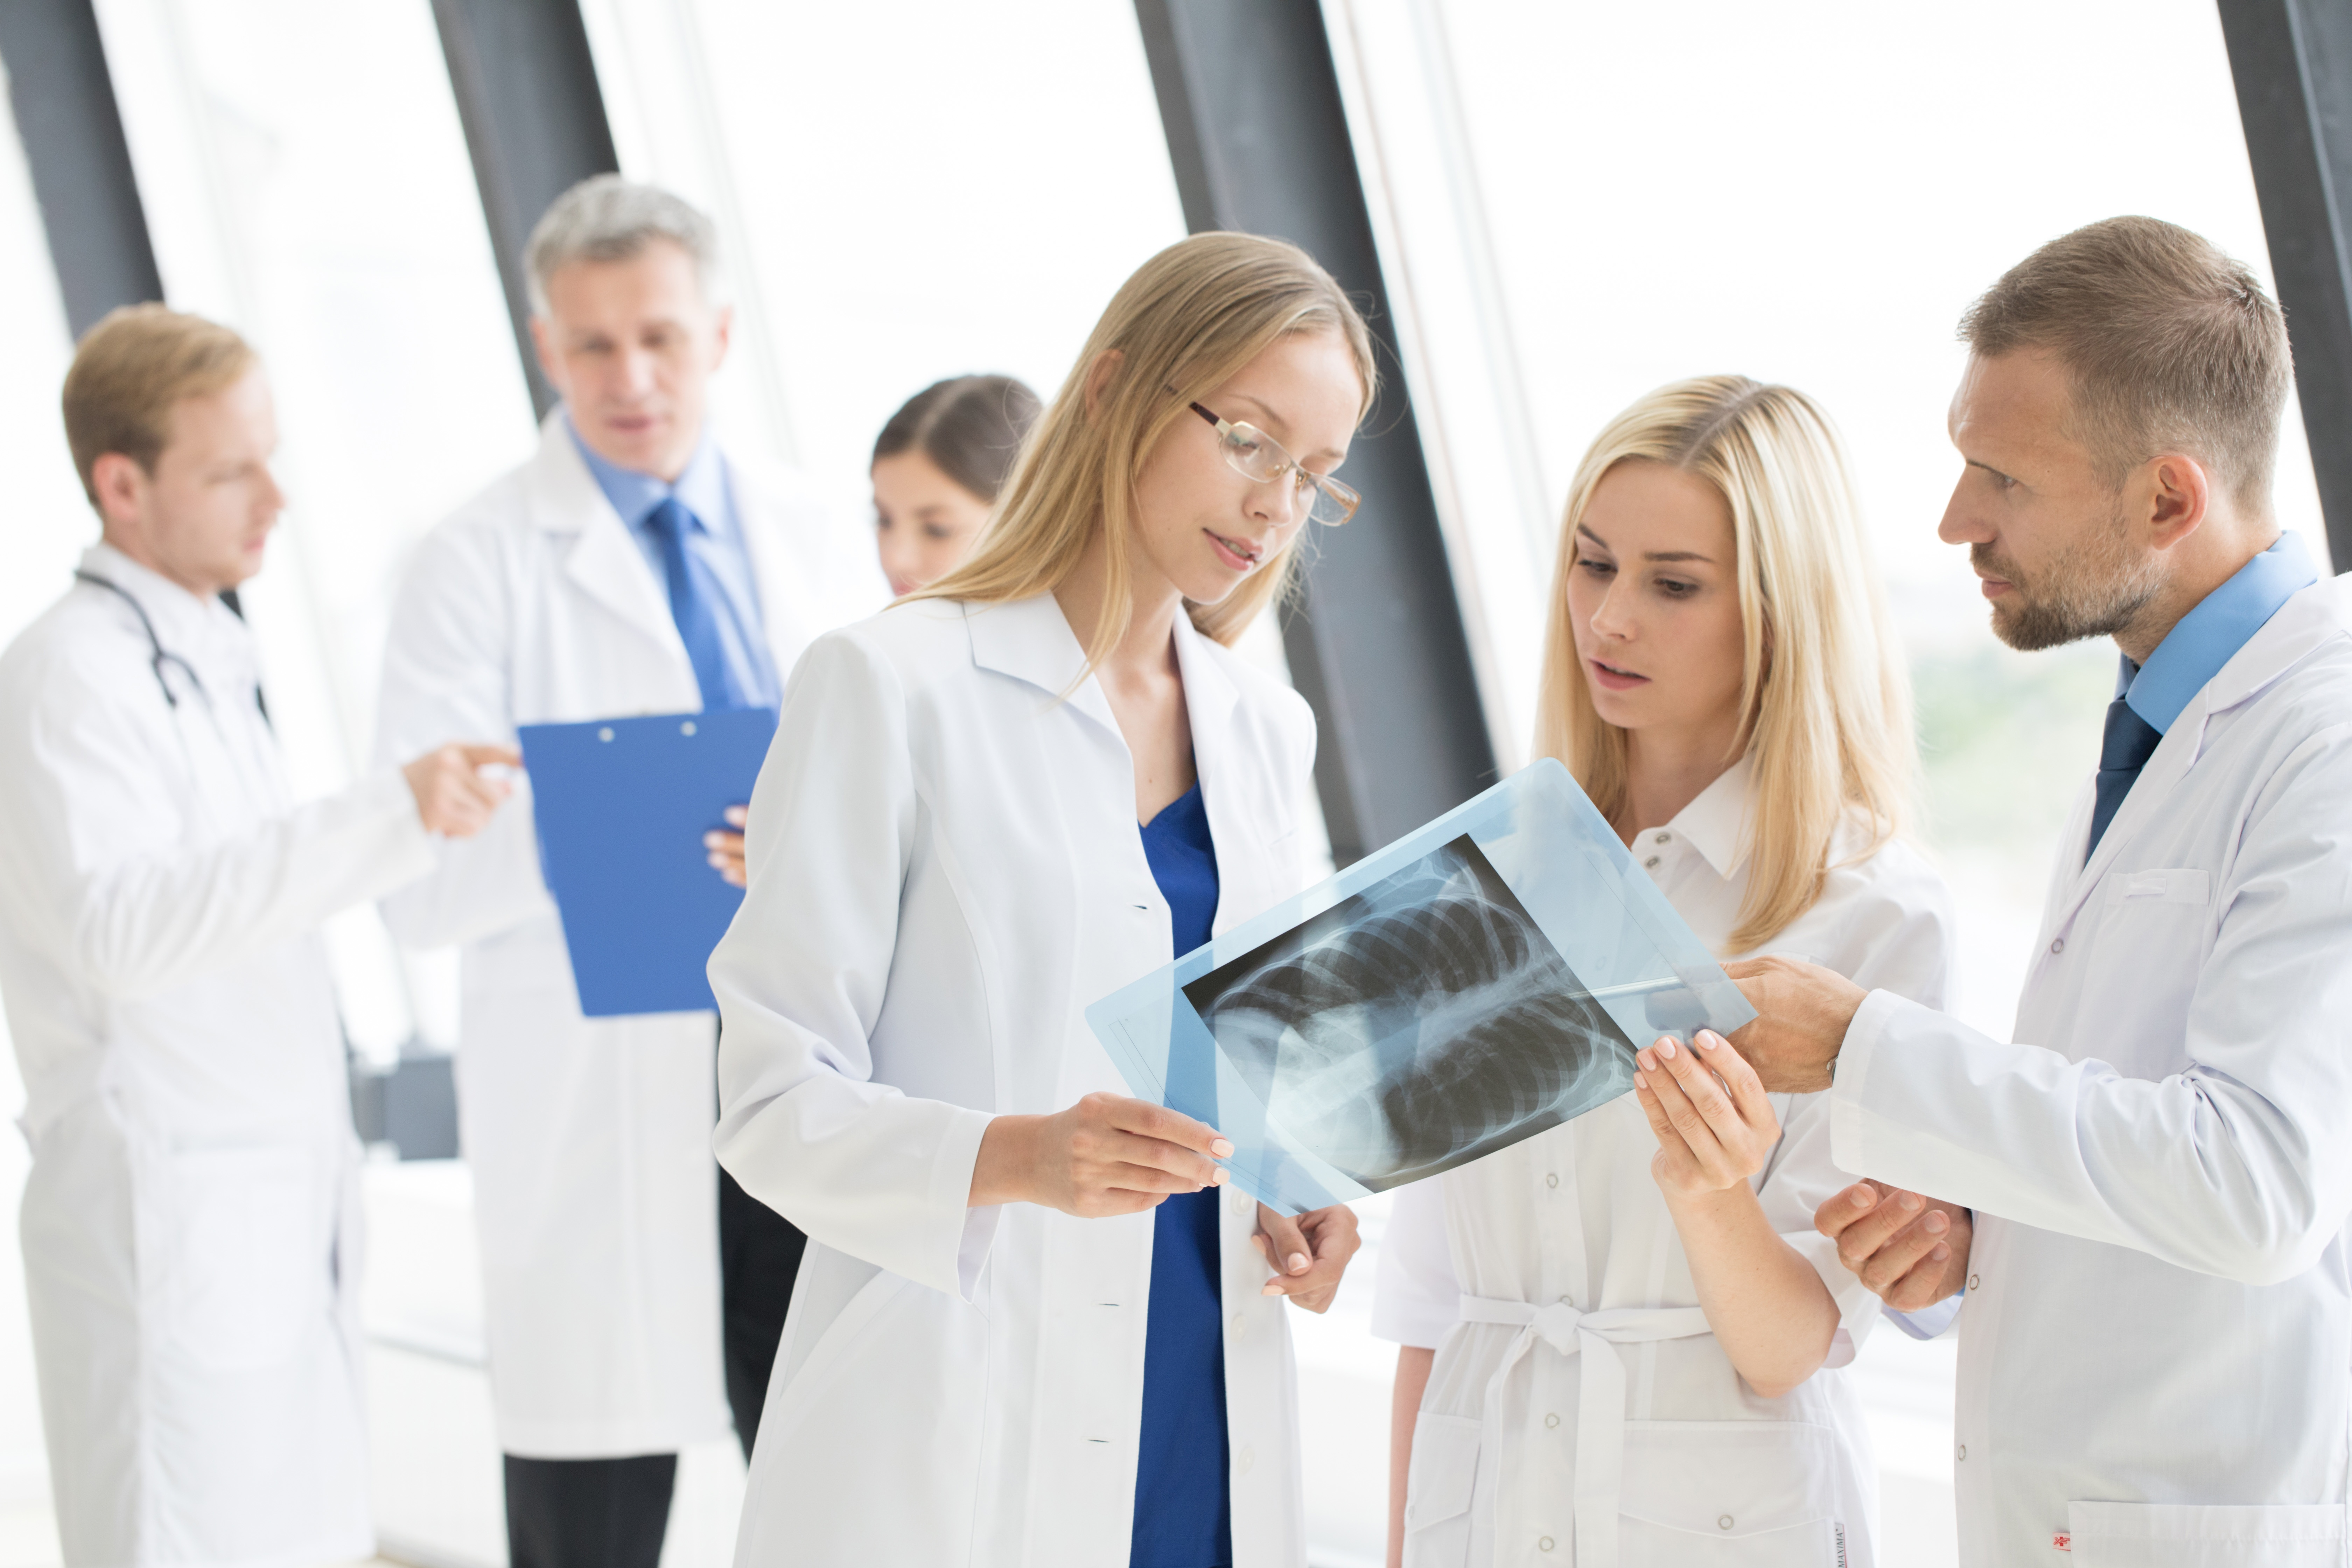 Radiation Education is Vital for all Employees